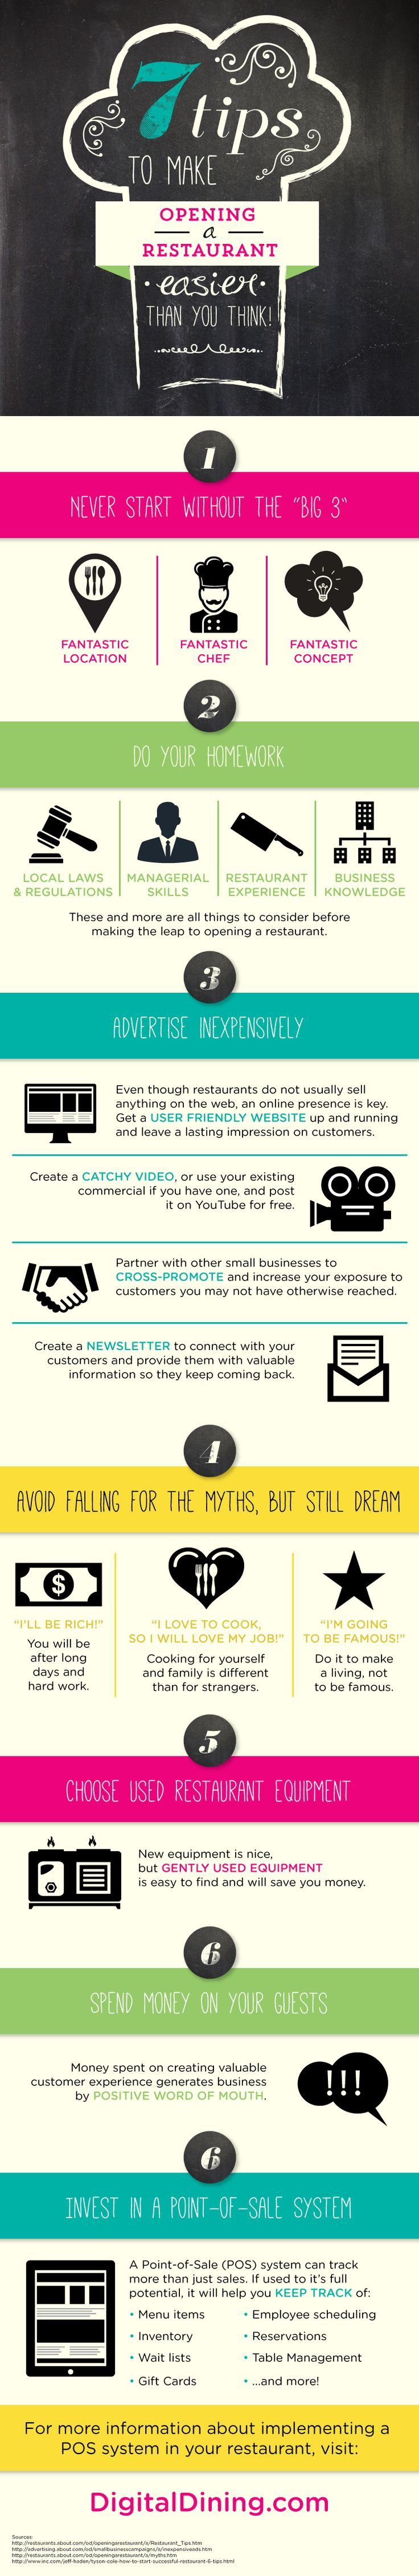 Uncategorized small business ideas small businesses ehow home business ideas to startsmall business ideas bad good ugly ideas - 7 Tips To Make Opening A Restaurant Easier Infographic Small Restaurantsrestaurant Dealsbusiness Ideasbusiness